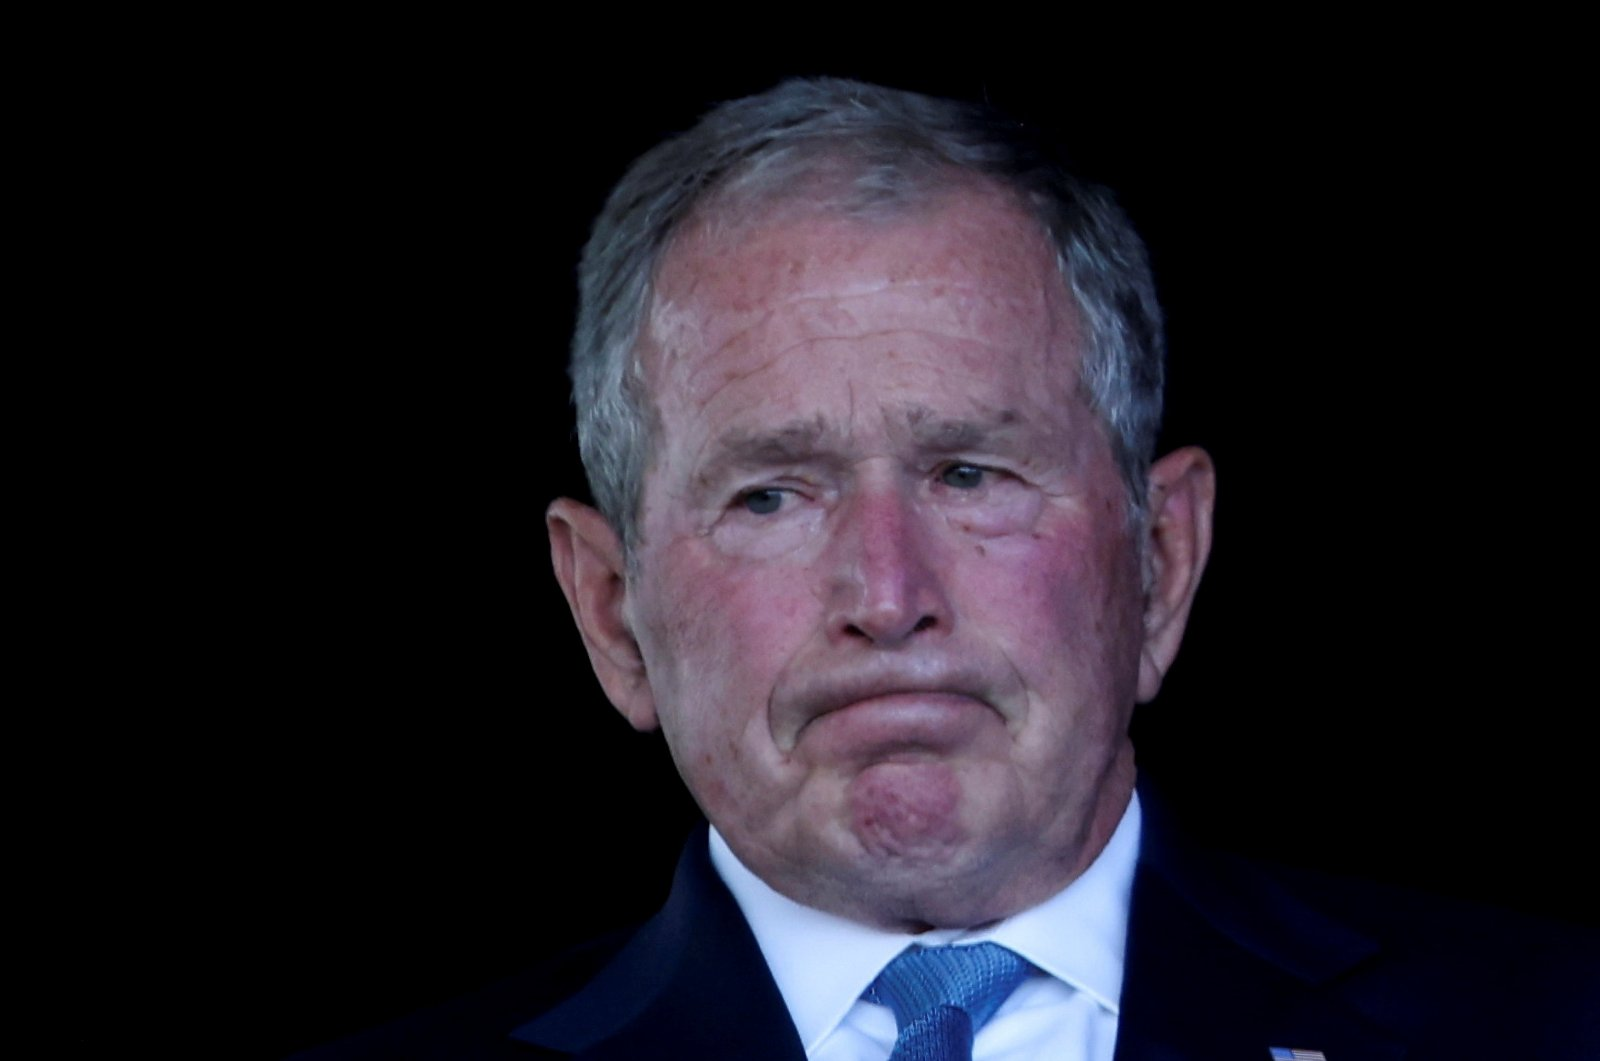 Former U.S. President George W. Bush attends an event commemorating the 20th anniversary of the Sept. 11, 2001 attacks at the Flight 93 National Memorial in Stoystown, Pennsylvania, U.S., Sept. 11, 2021. (Reuters Photo)